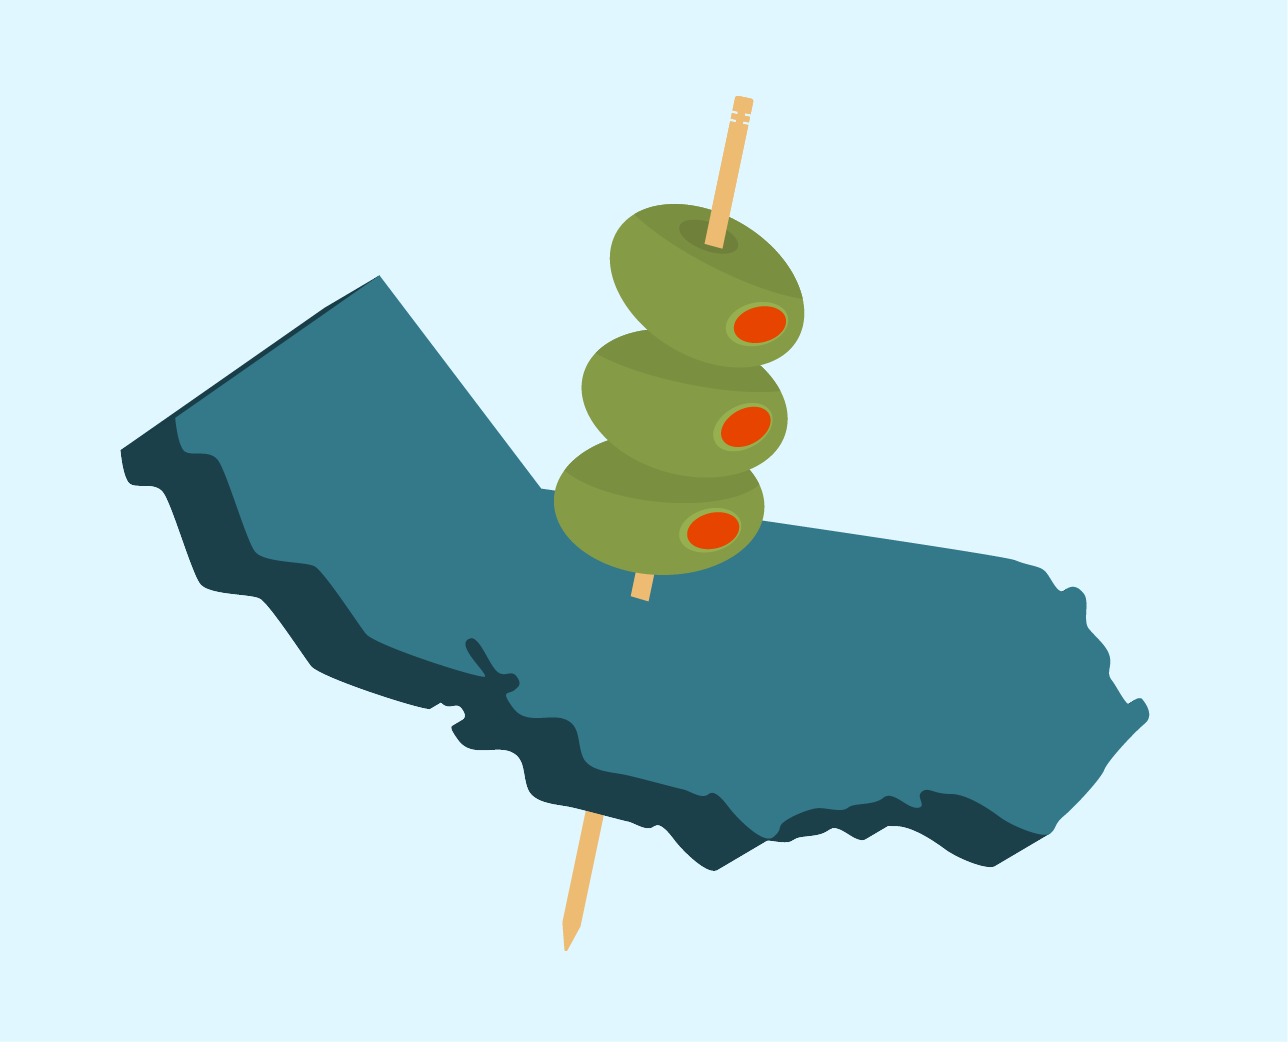 Harvard Management Company had a stake in a California olive oil company during a time when the California company's business practices have come under question.